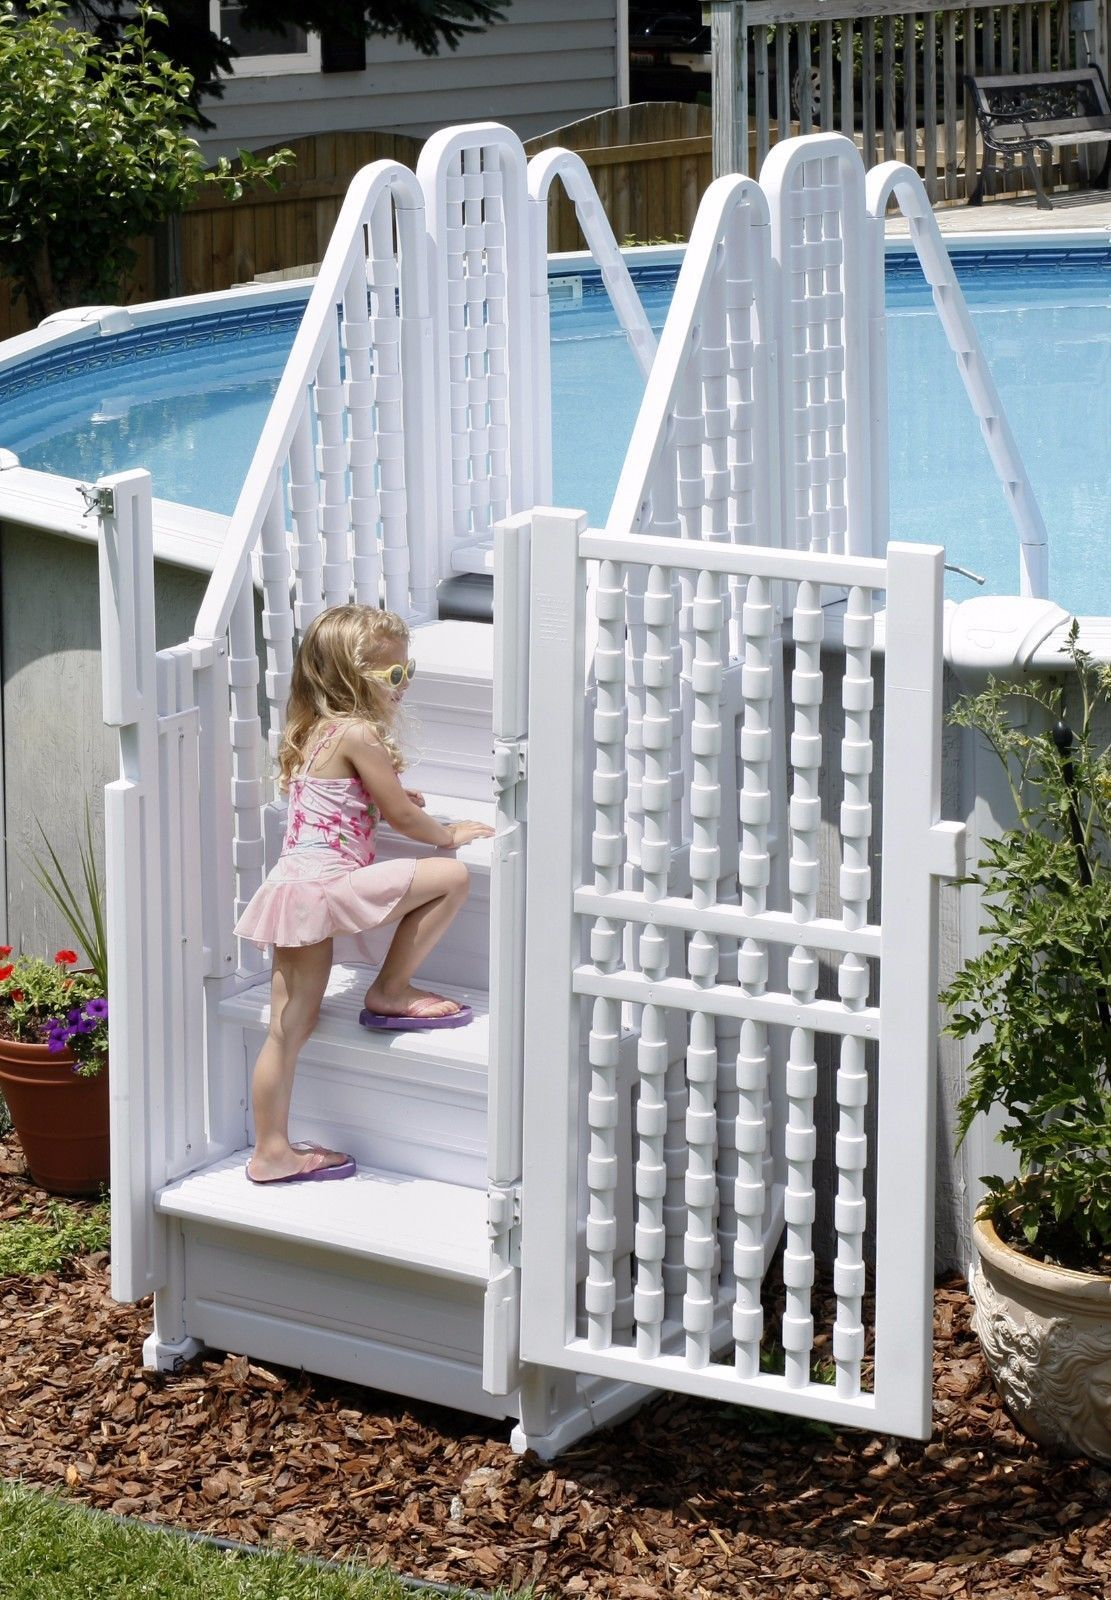 Easy pool step complete entry system with gate for above